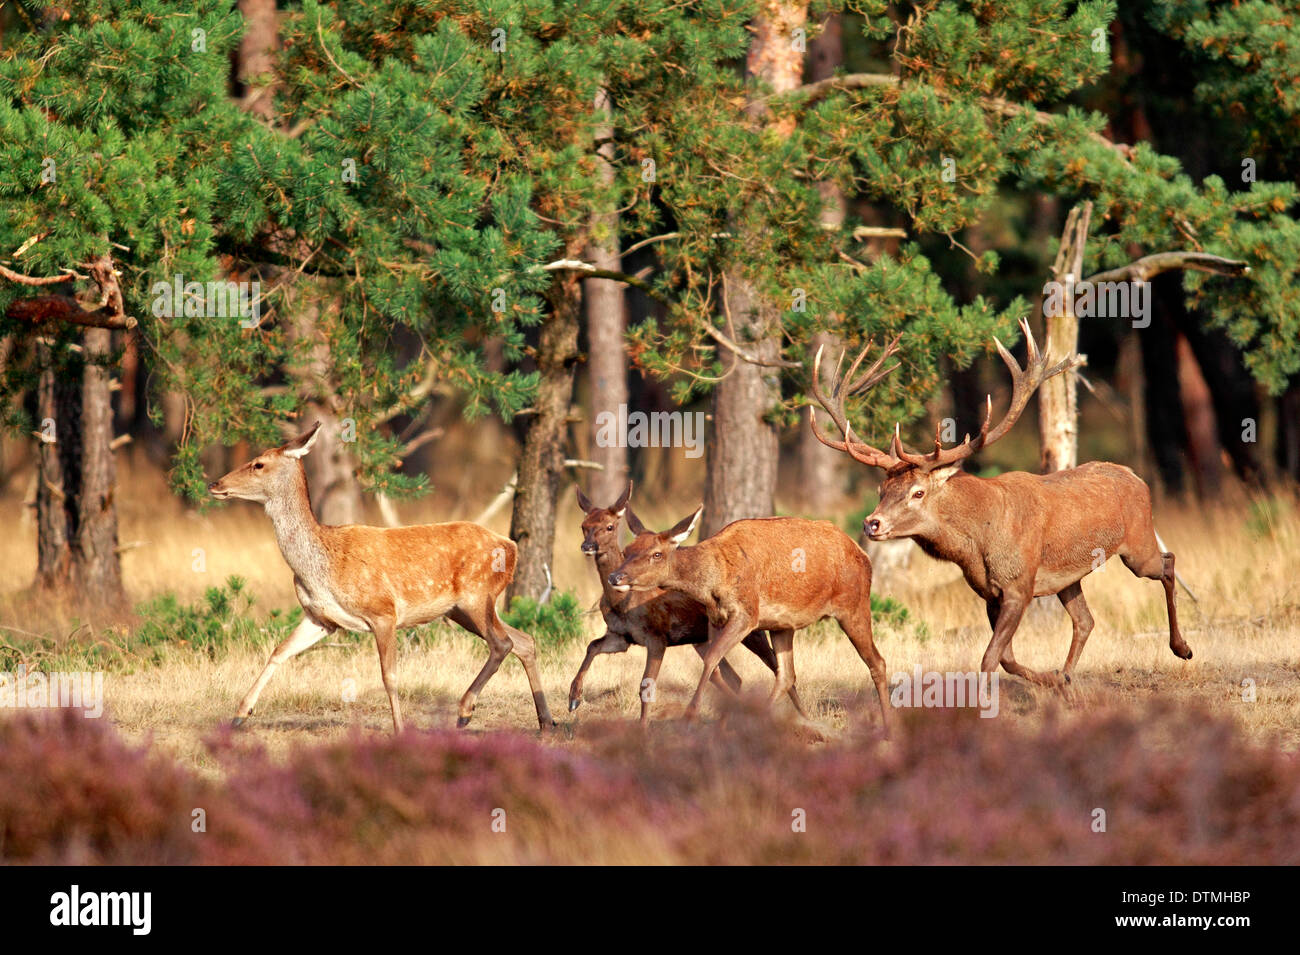 Red Deer, male and females, Hoge Veluwe Nationalpark, Netherlands, Europe / (Cervus elaphus) - Stock Image